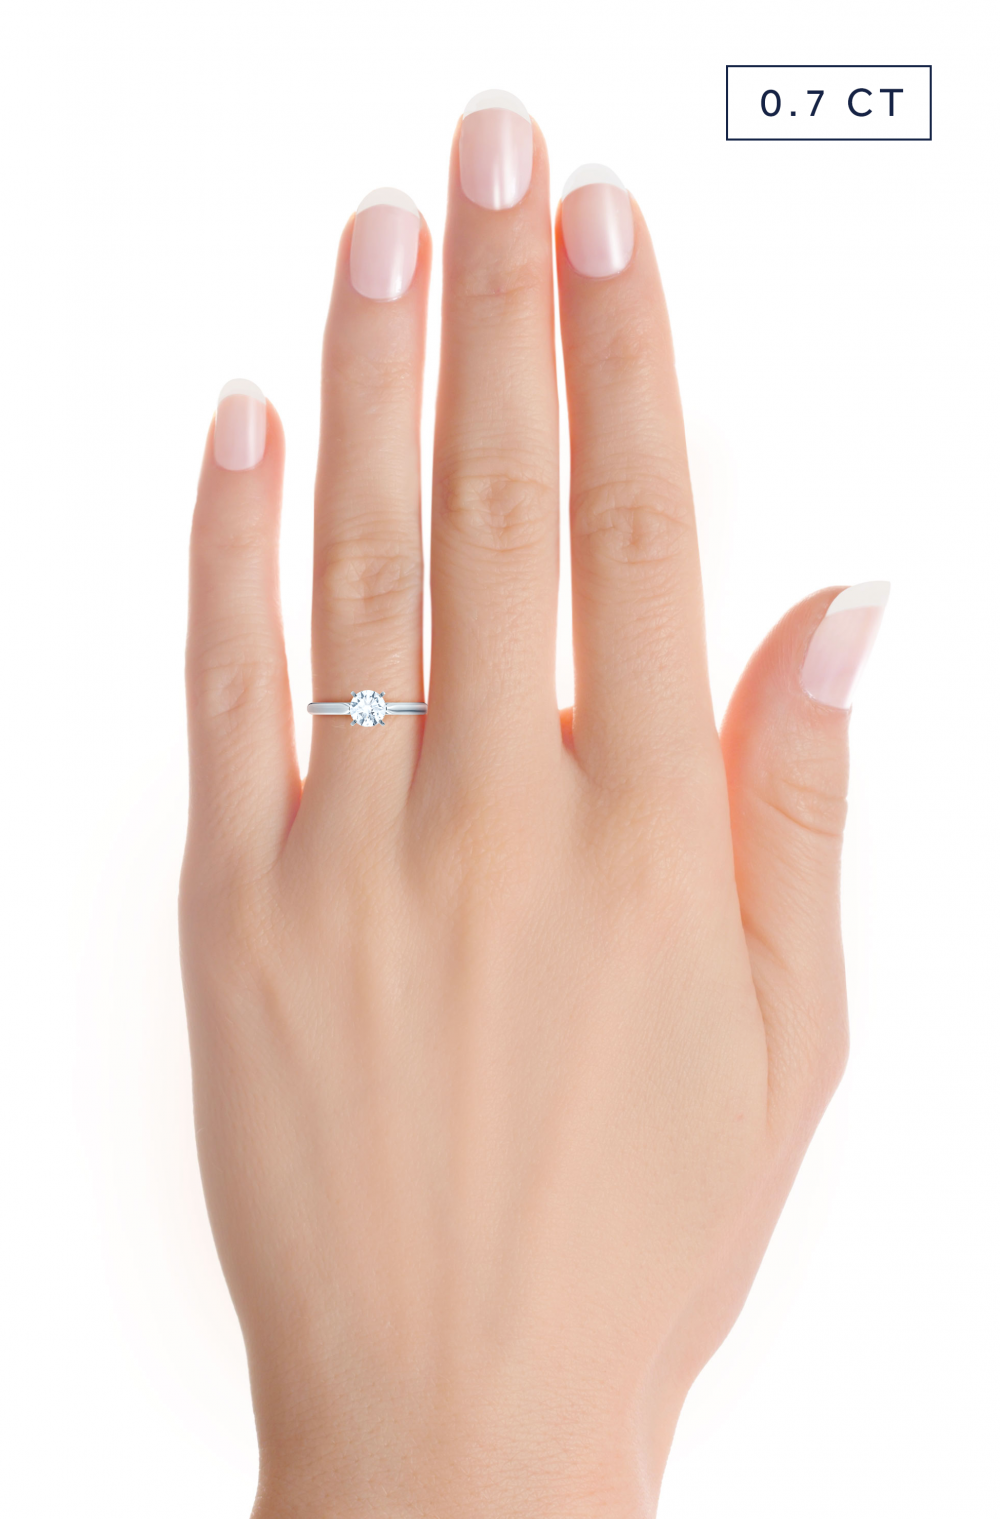 0.7ct diamond on hand